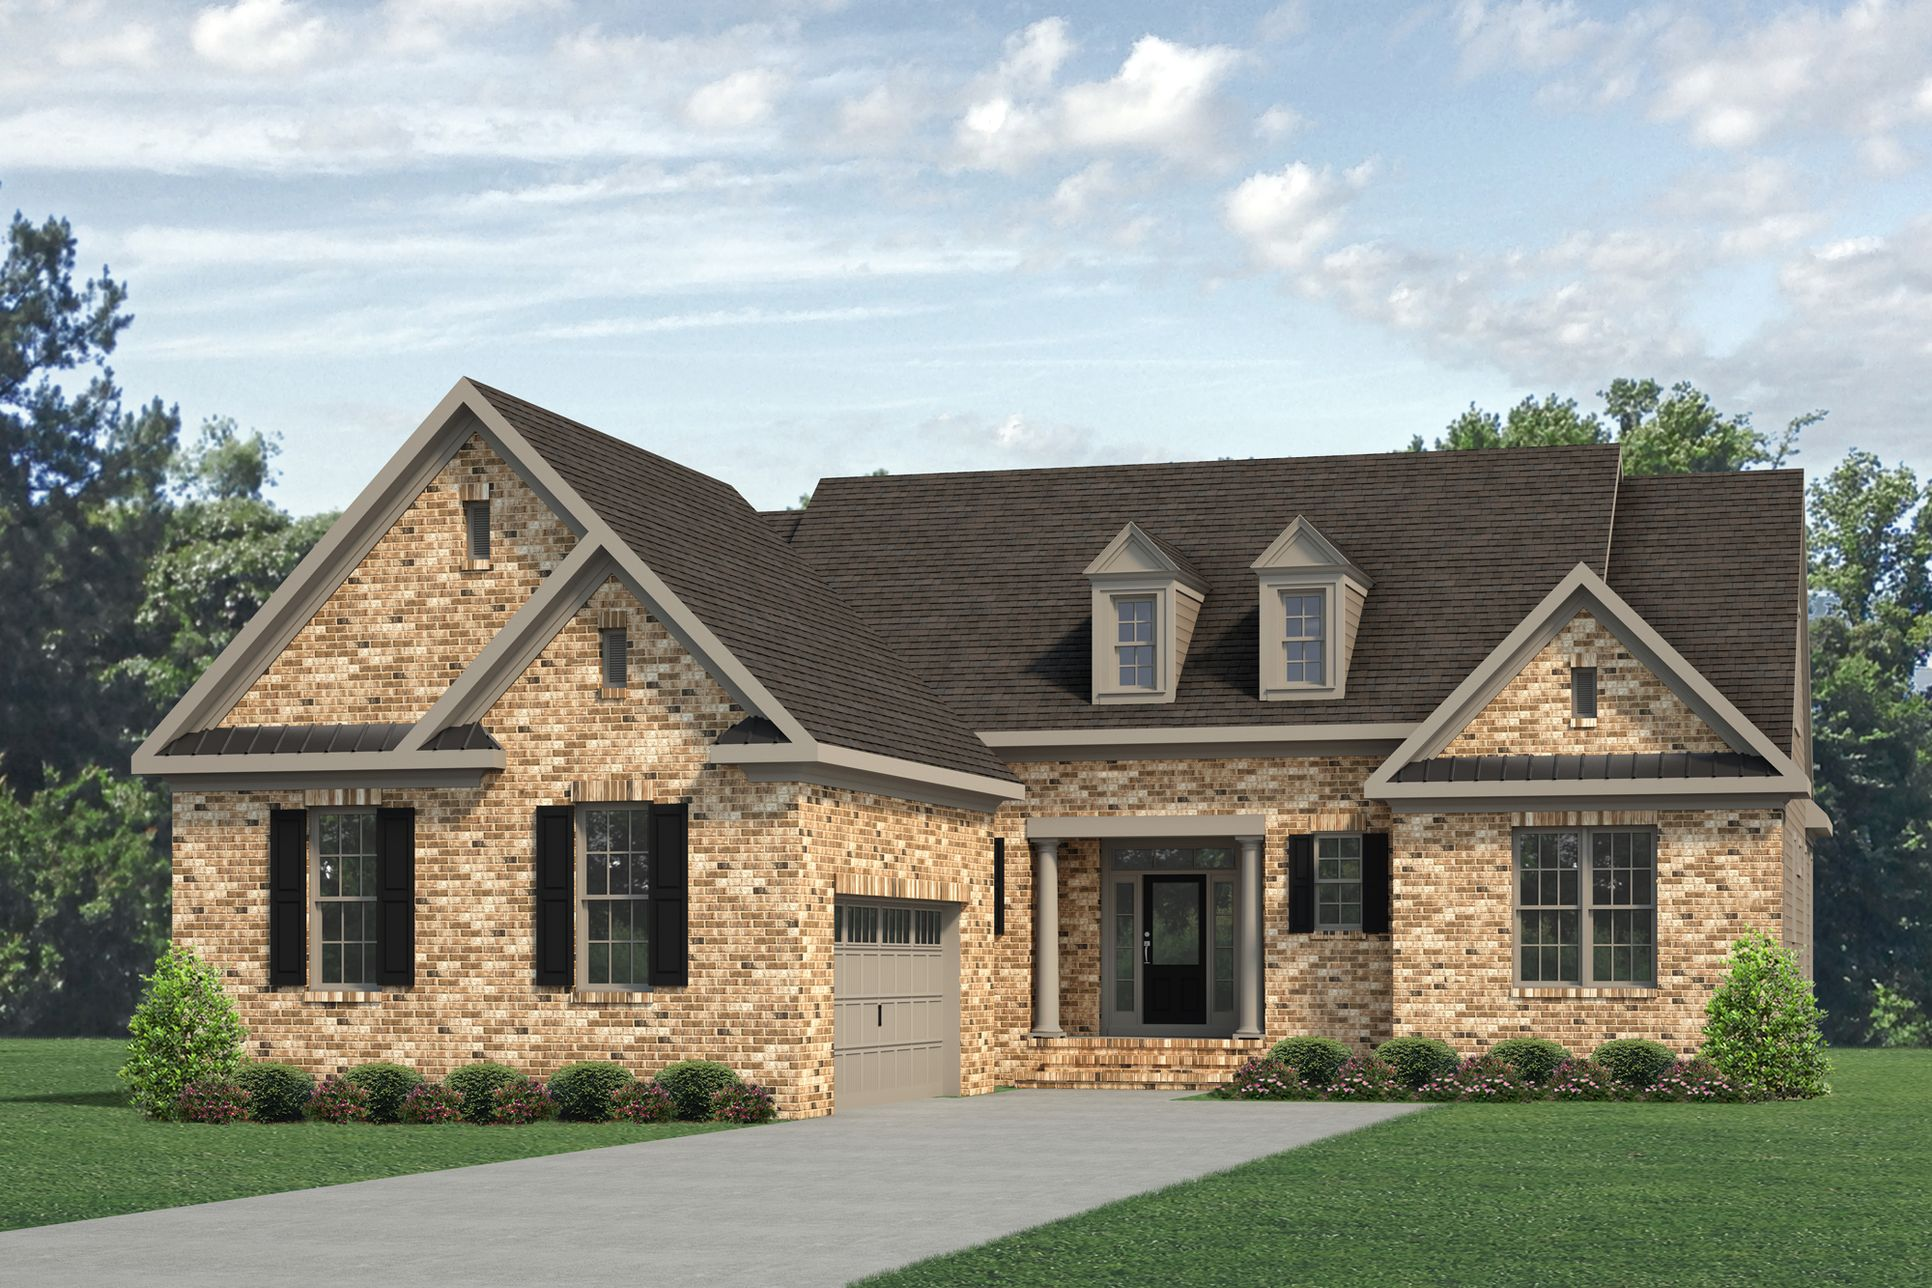 Bridgewater - 'B' Model Home